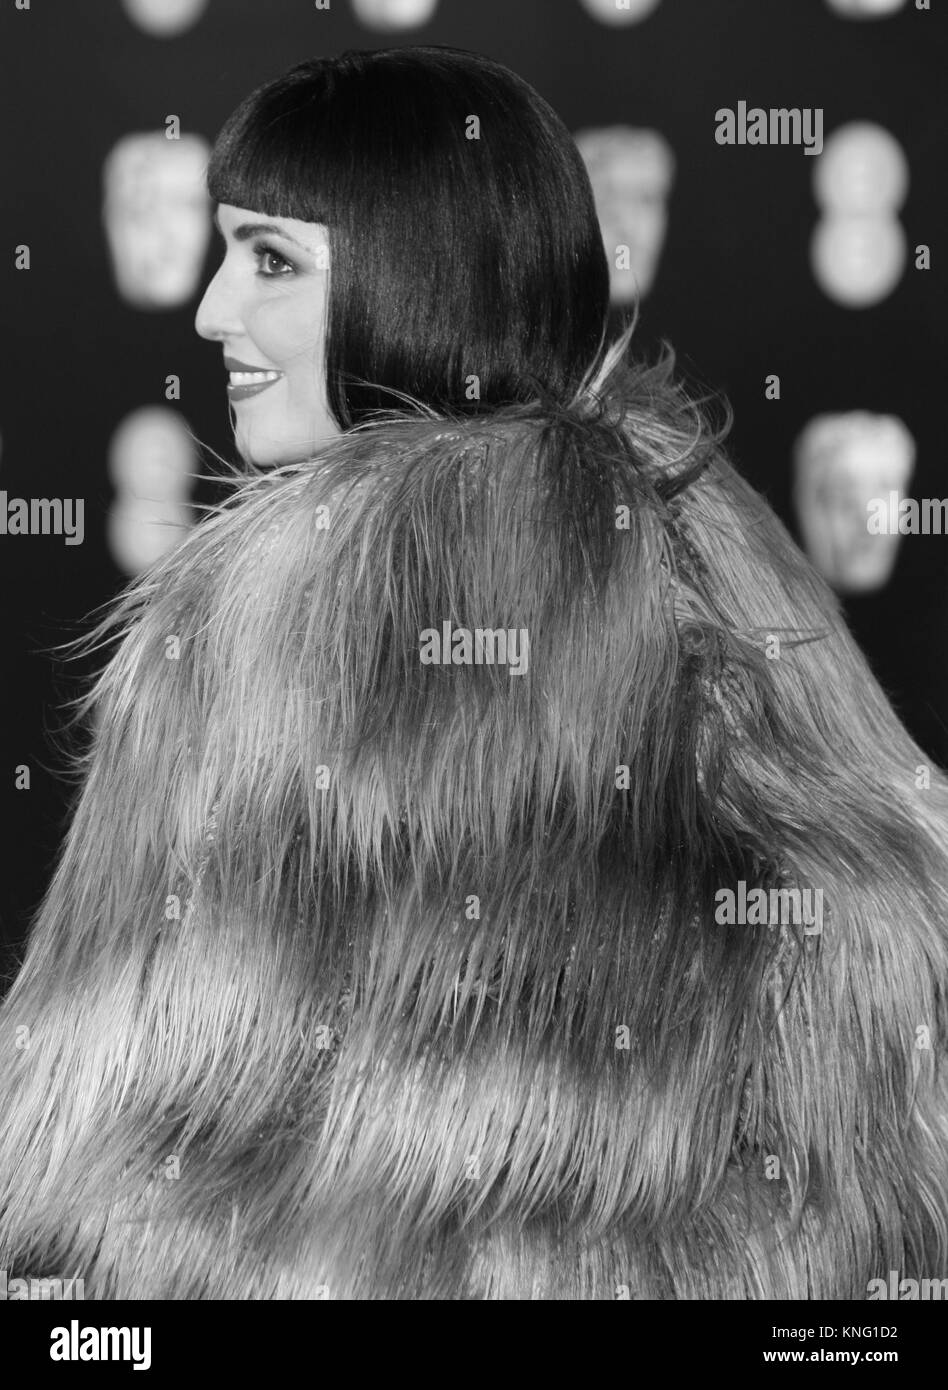 Image digitally altered to monochrome Noomi Rapace attends The EE British Academy Film Awards (BAFTA) at the Royal Stock Photo